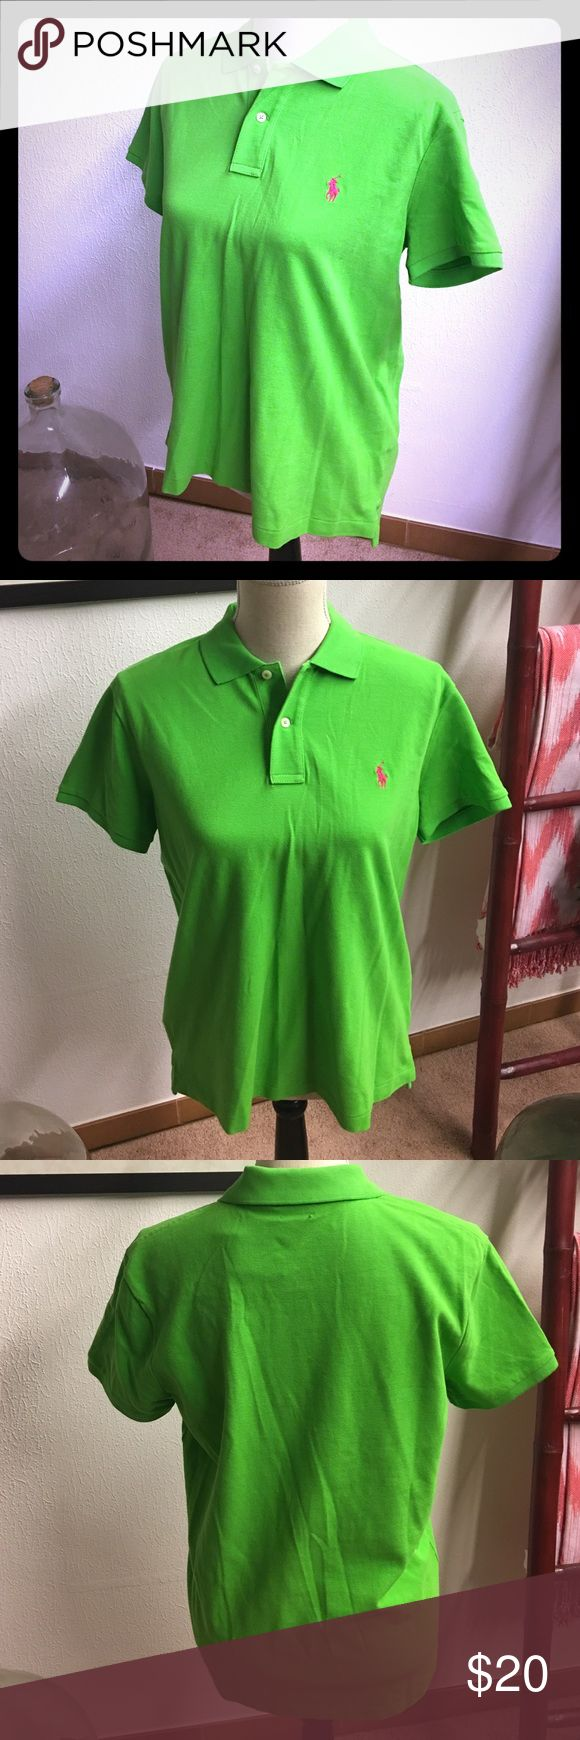 RL Lime green Polo Shirt NWT size L, classic fit Polo by Ralph Lauren Tops